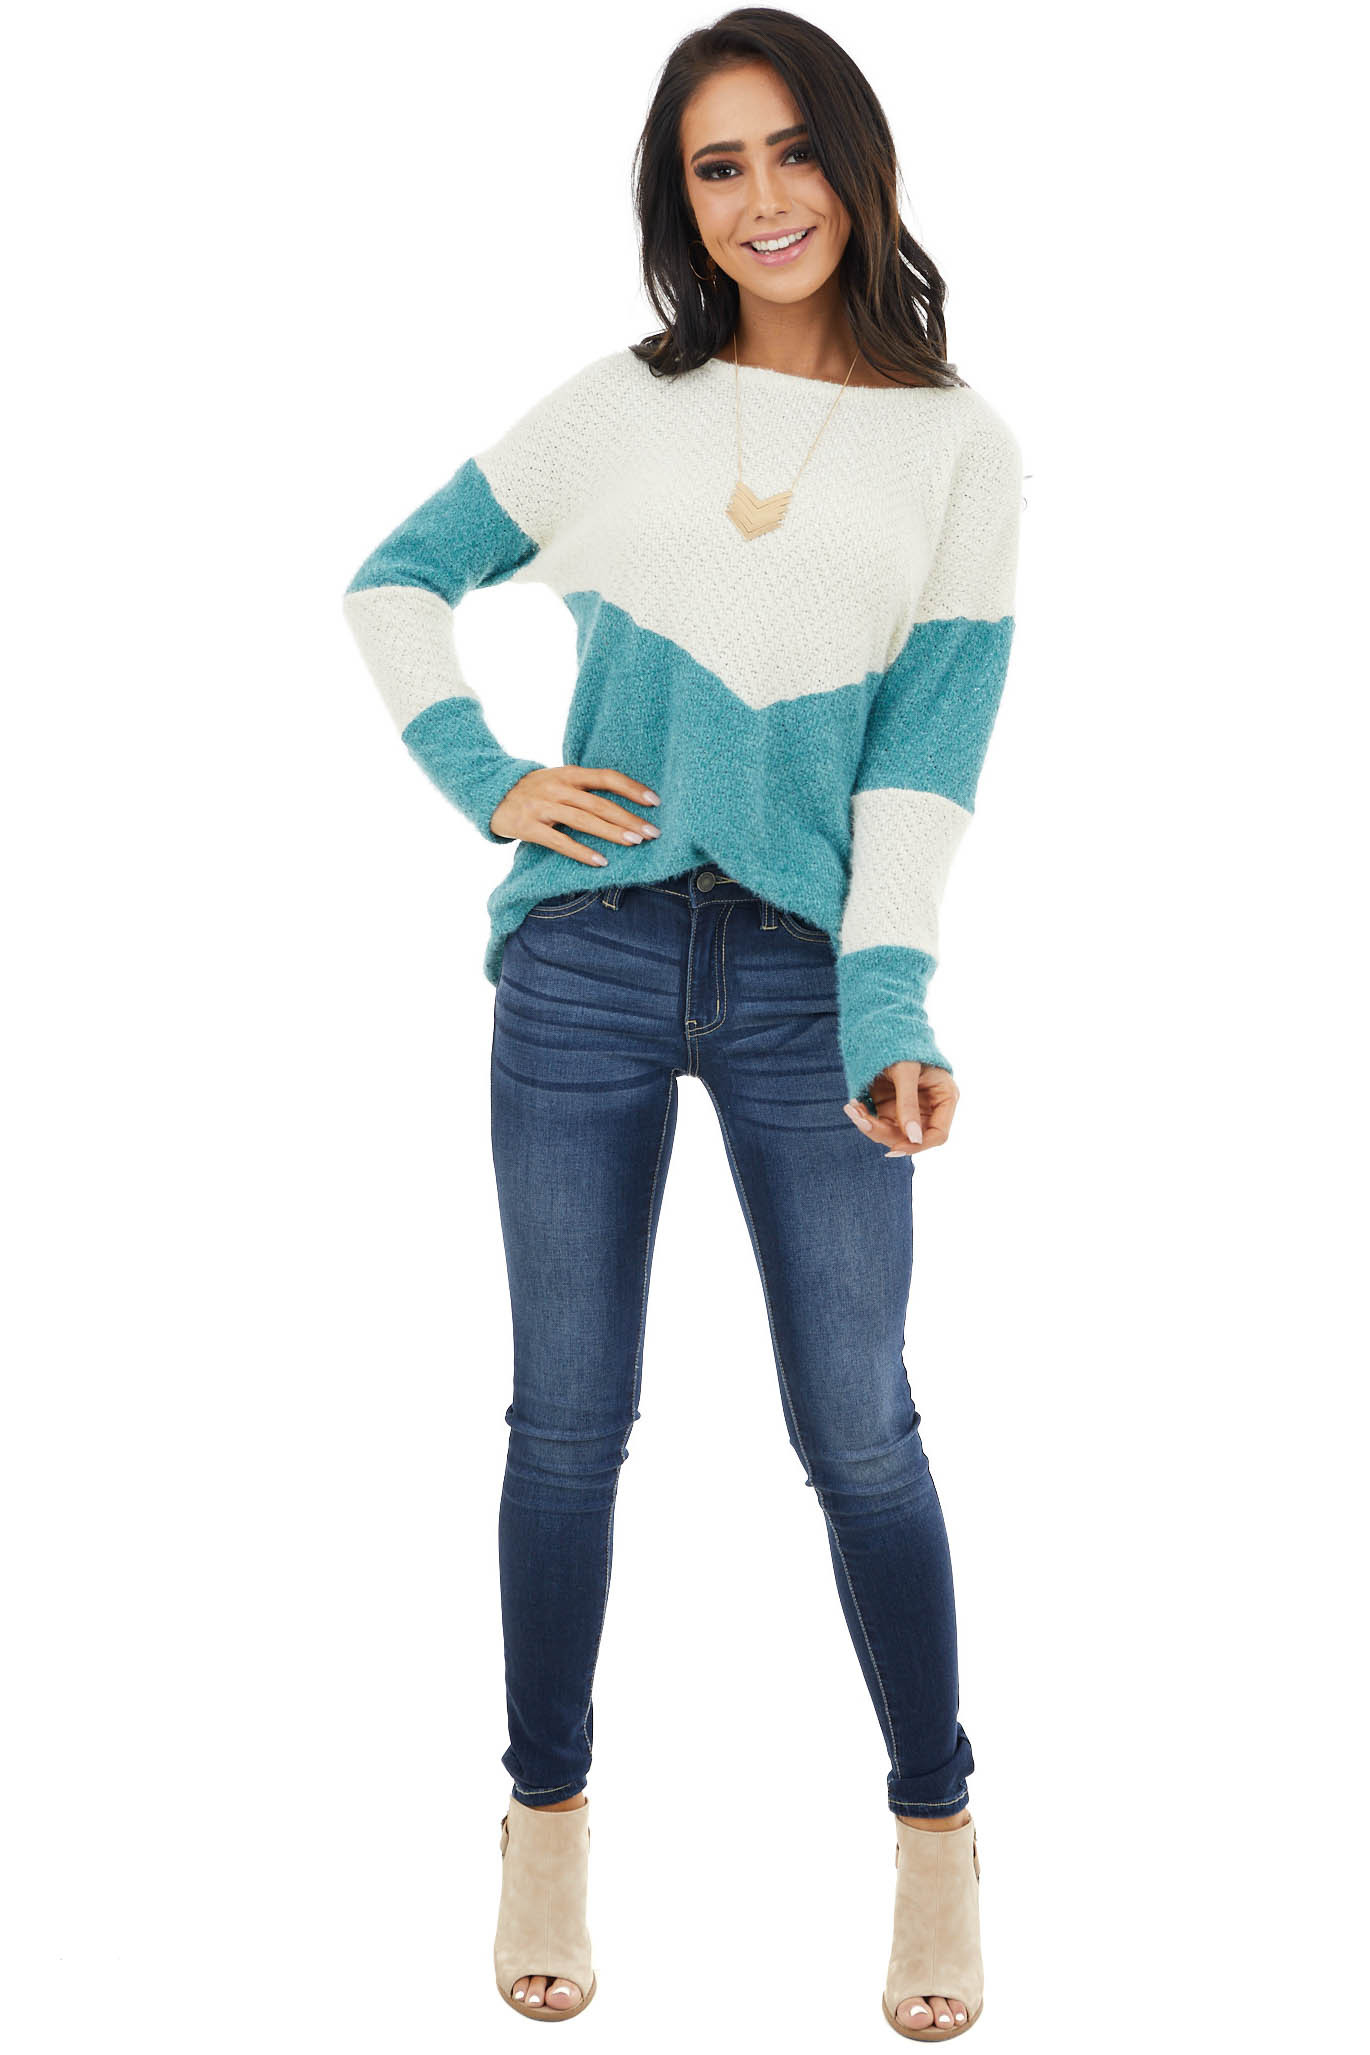 Teal and Cream Colorblock Sweater with Loose Knit Detail